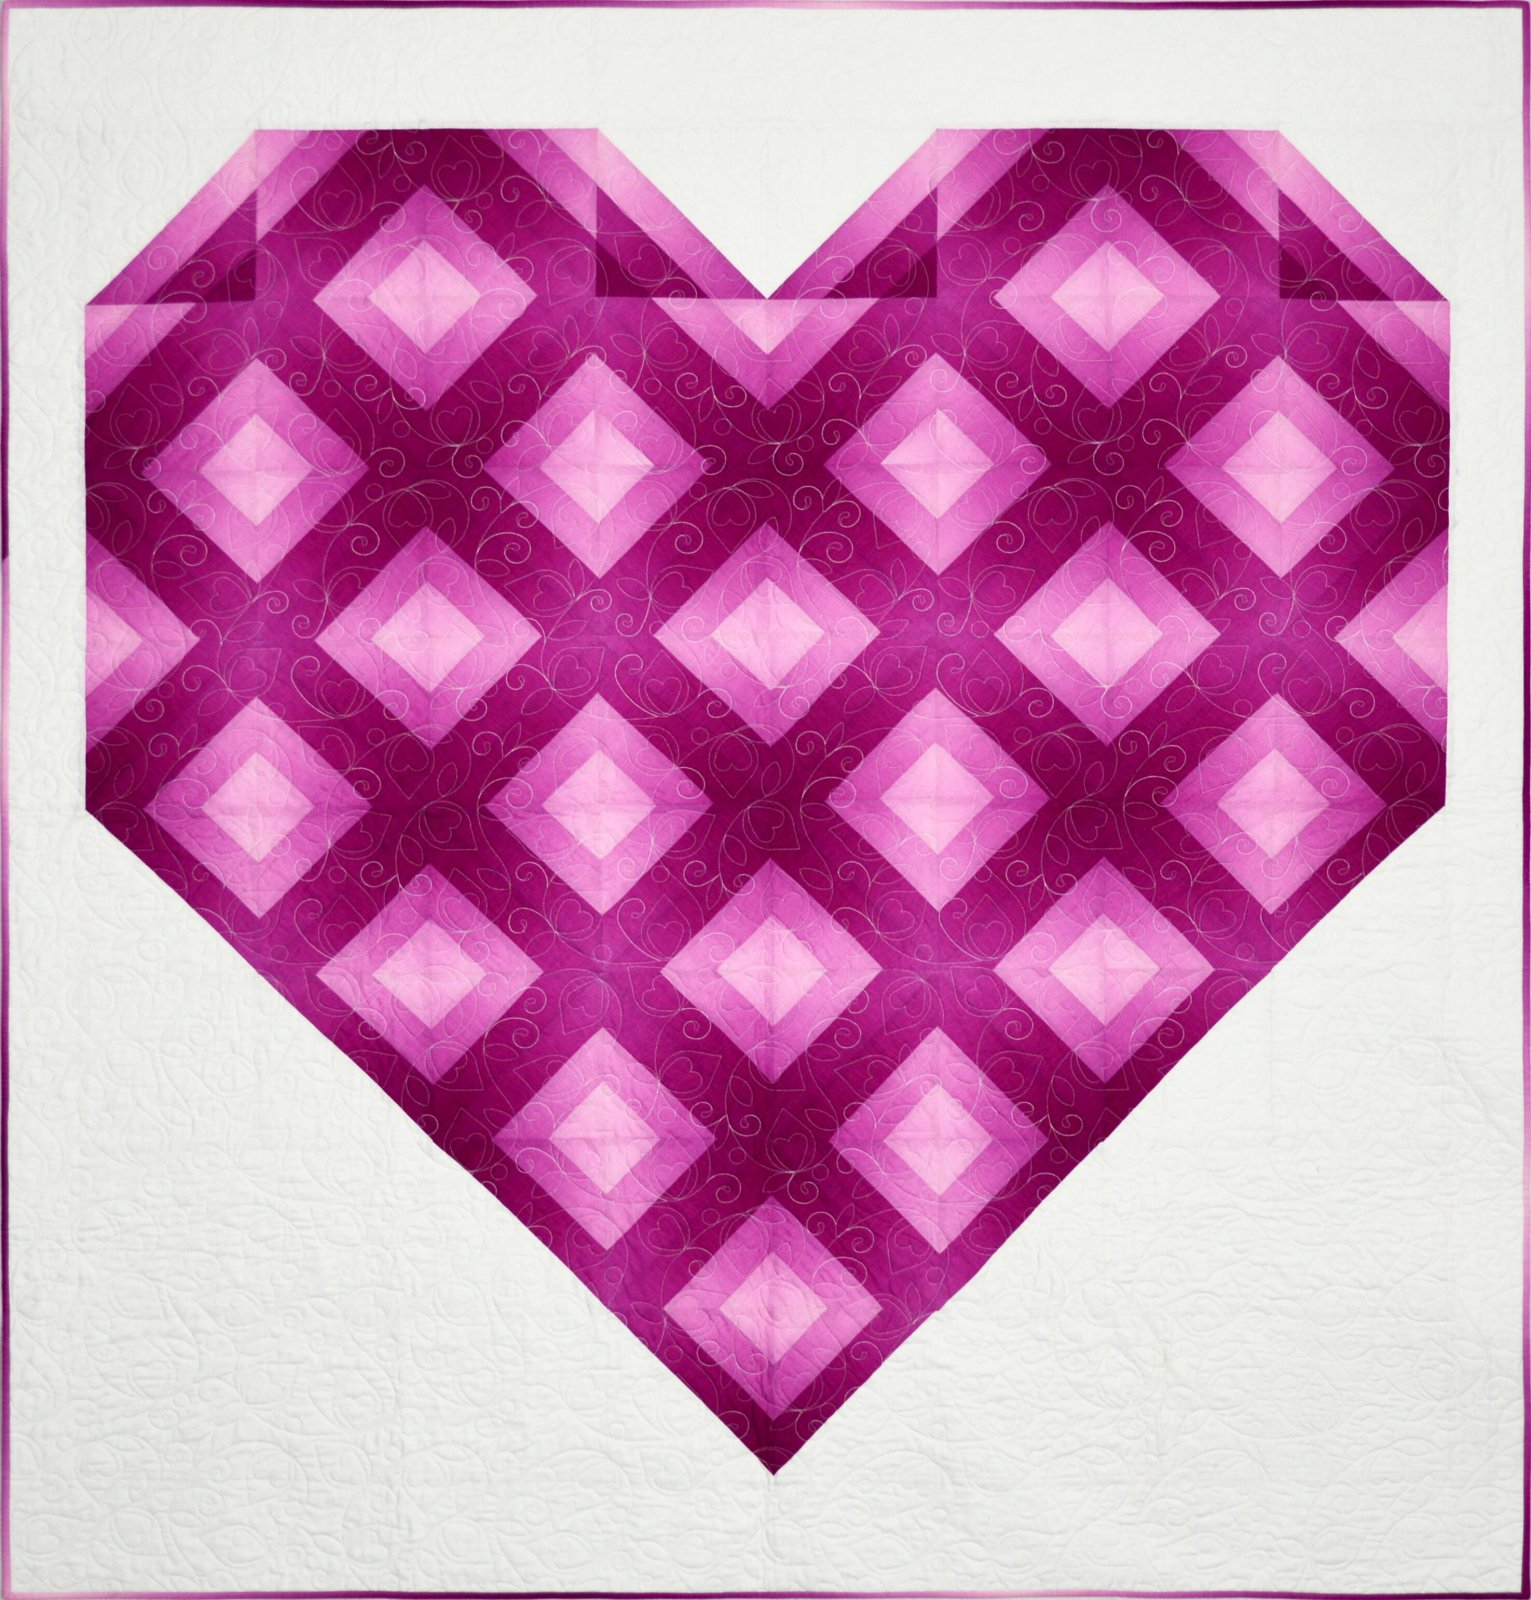 Faceted Ombre Heart